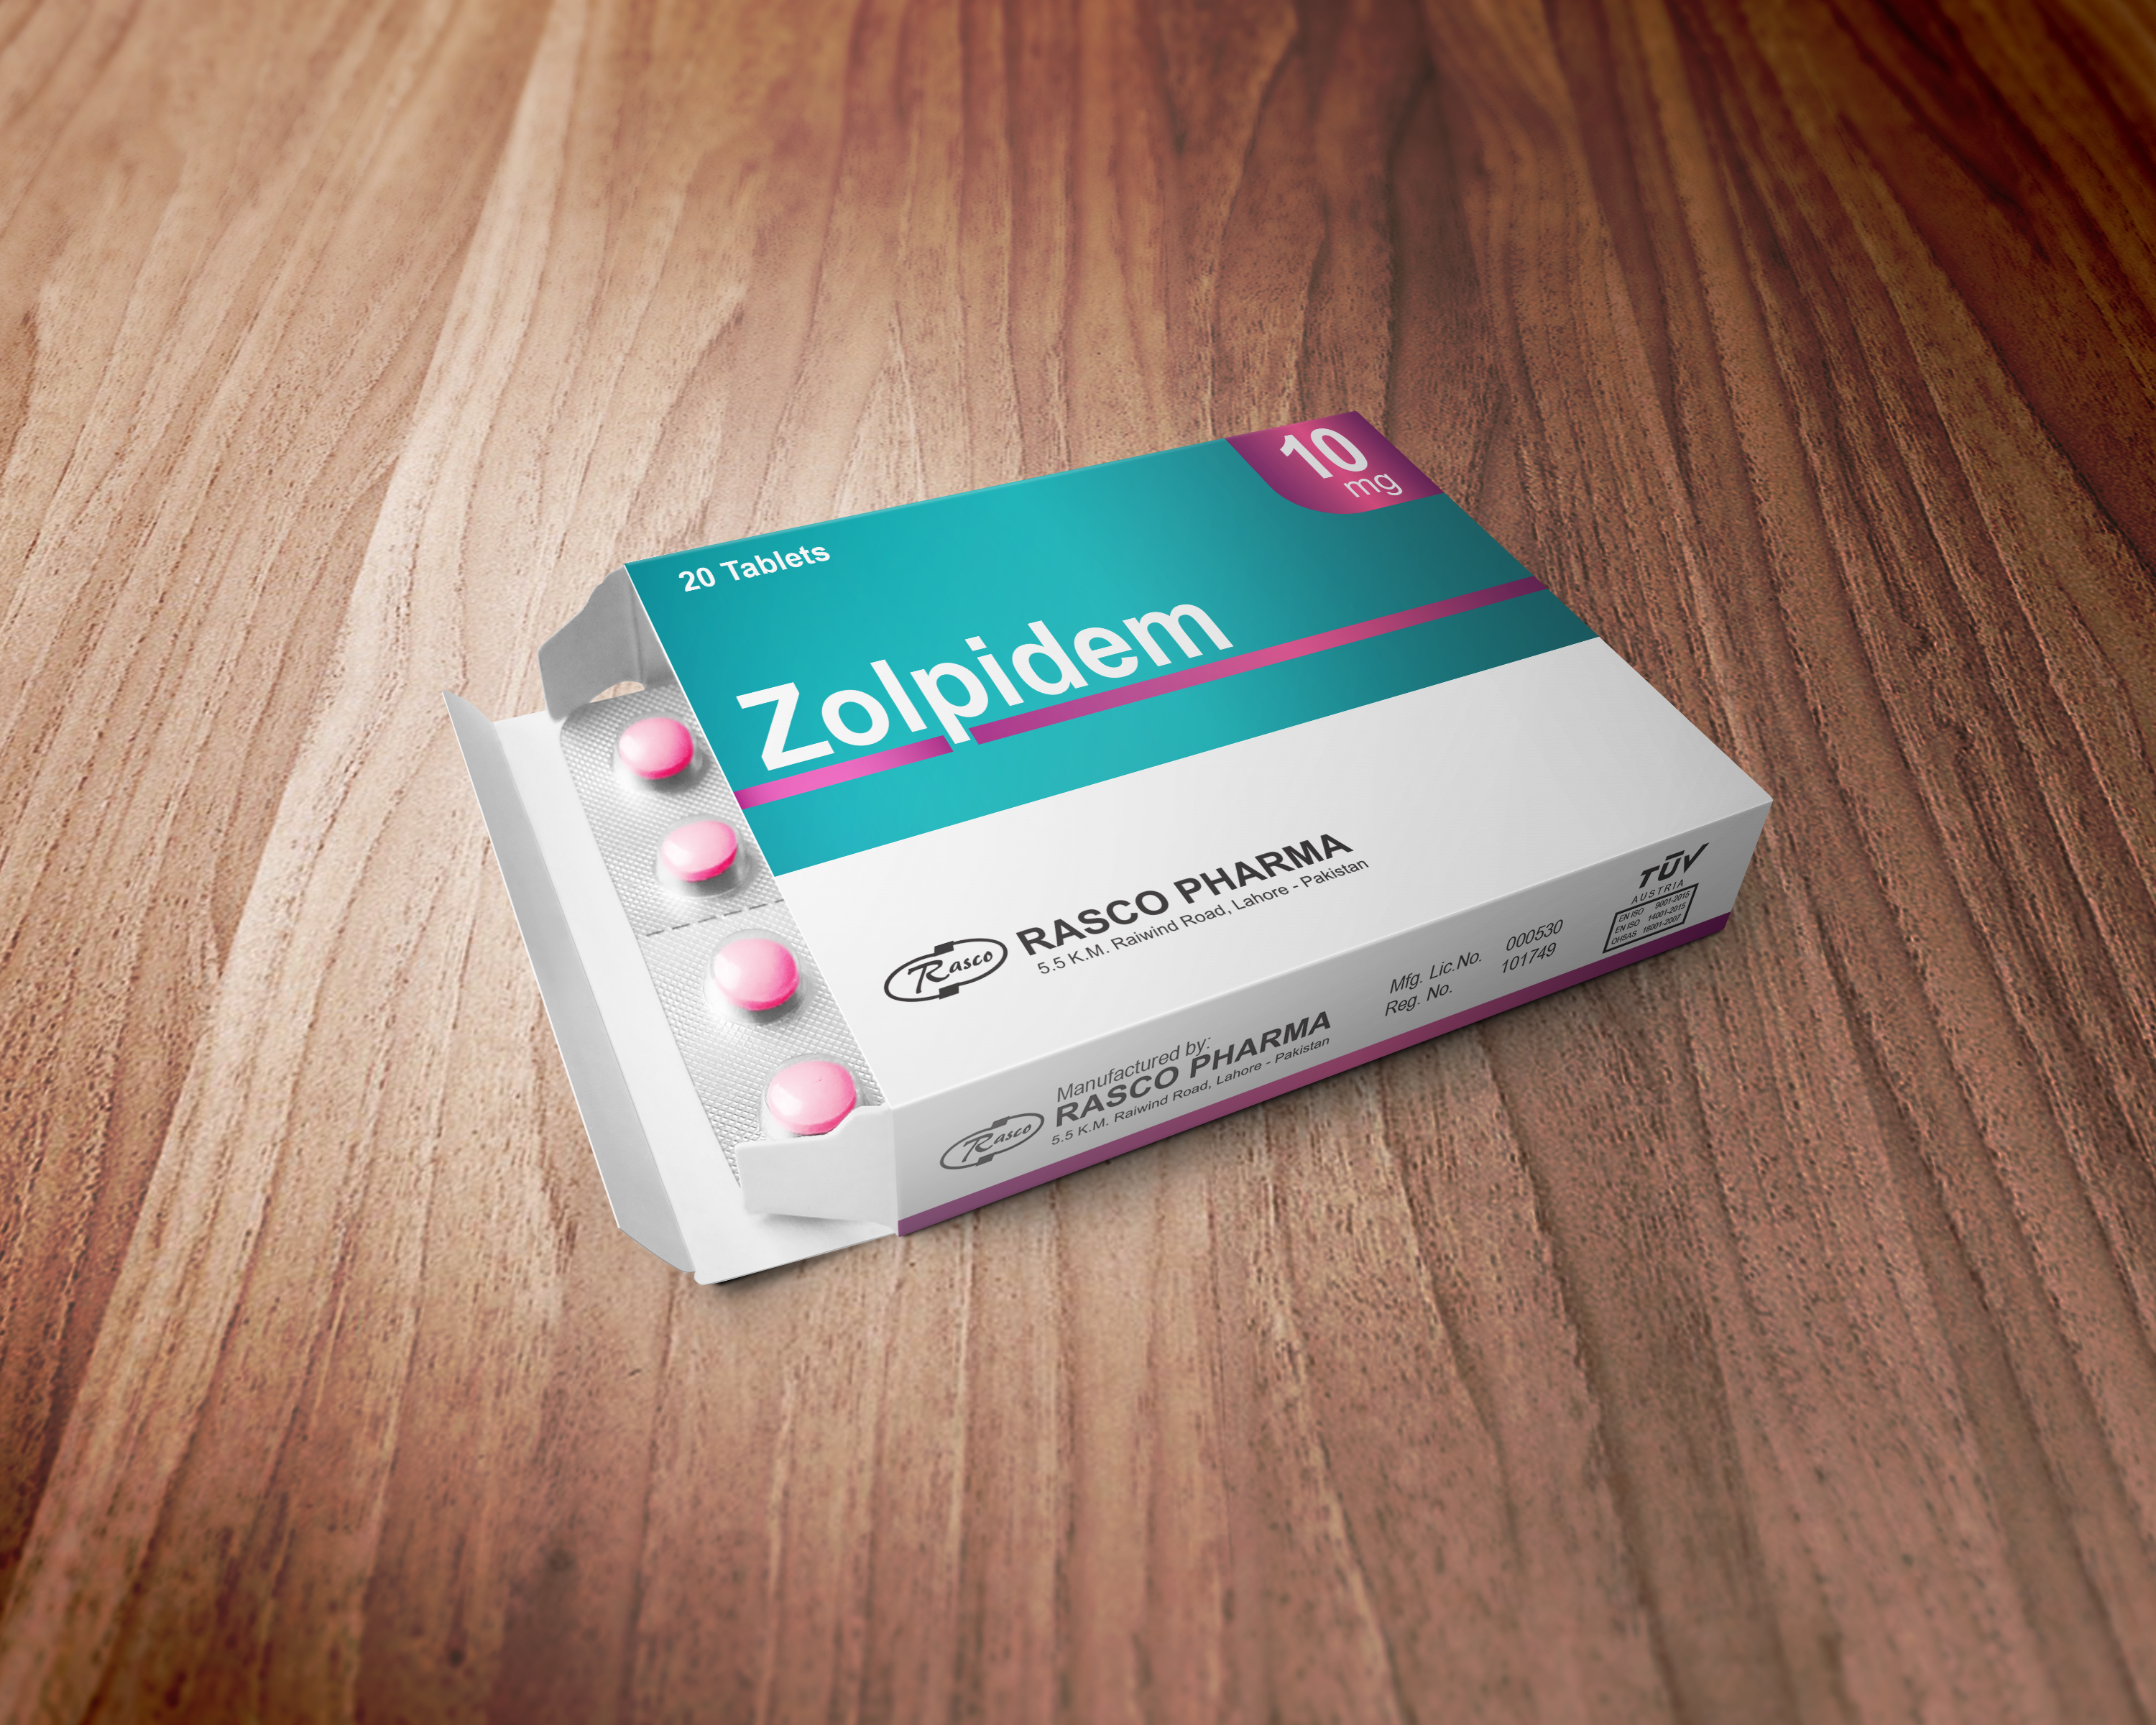 I will create Pharma packaging box and label design